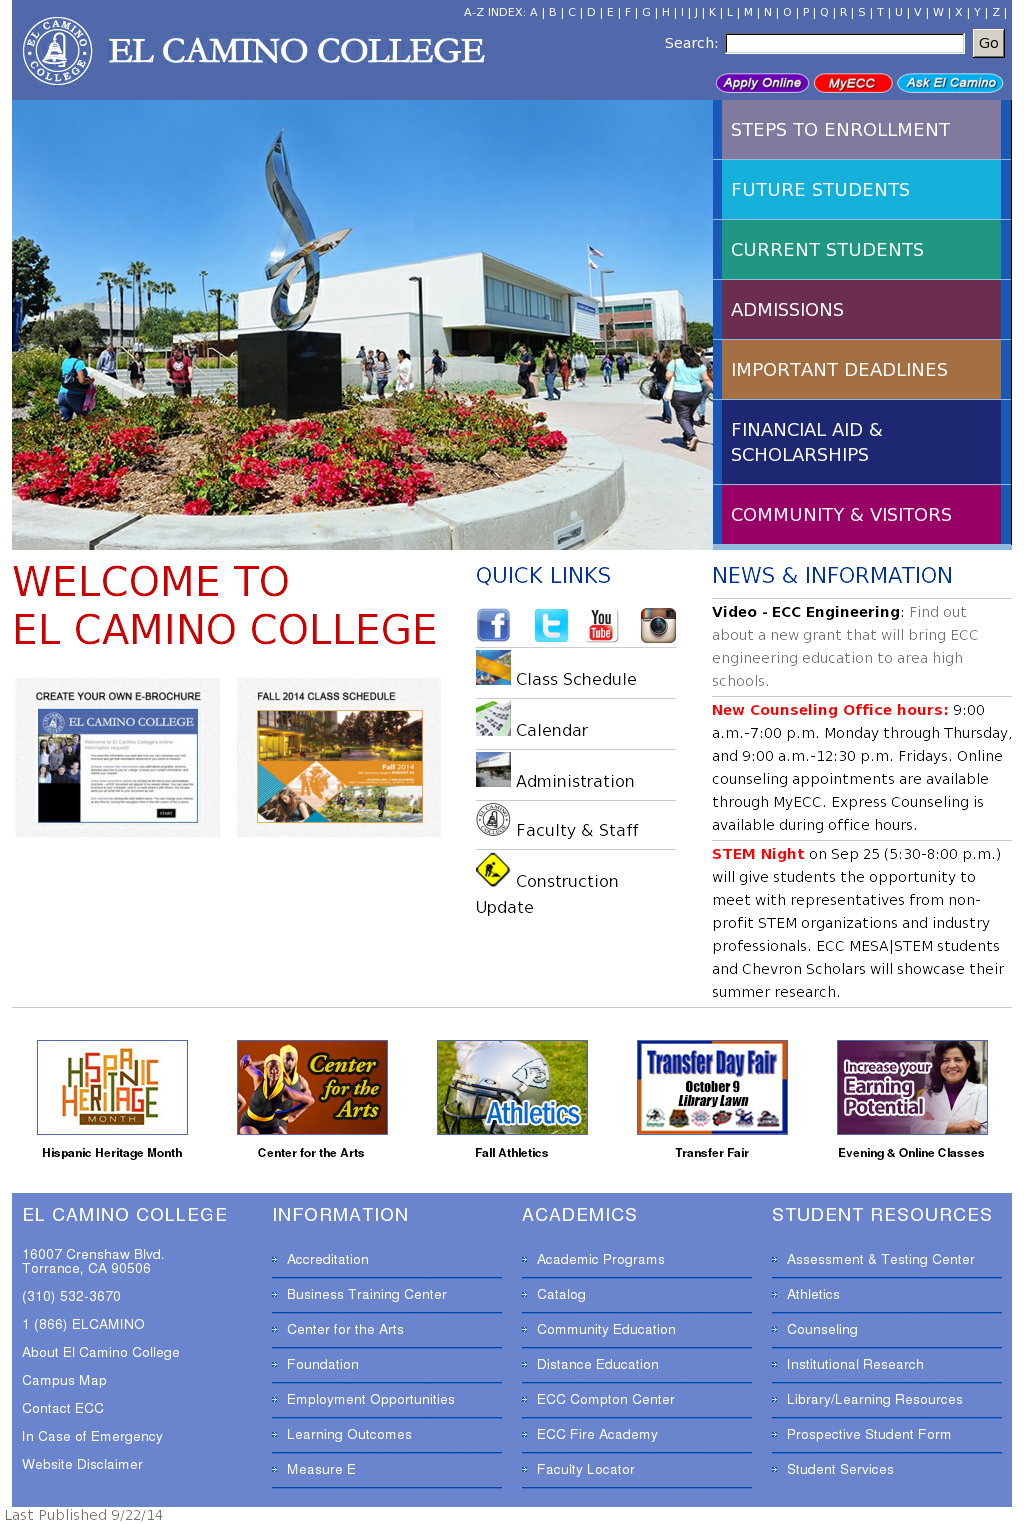 El Camino College >> El Camino College Competitors Revenue And Employees Owler